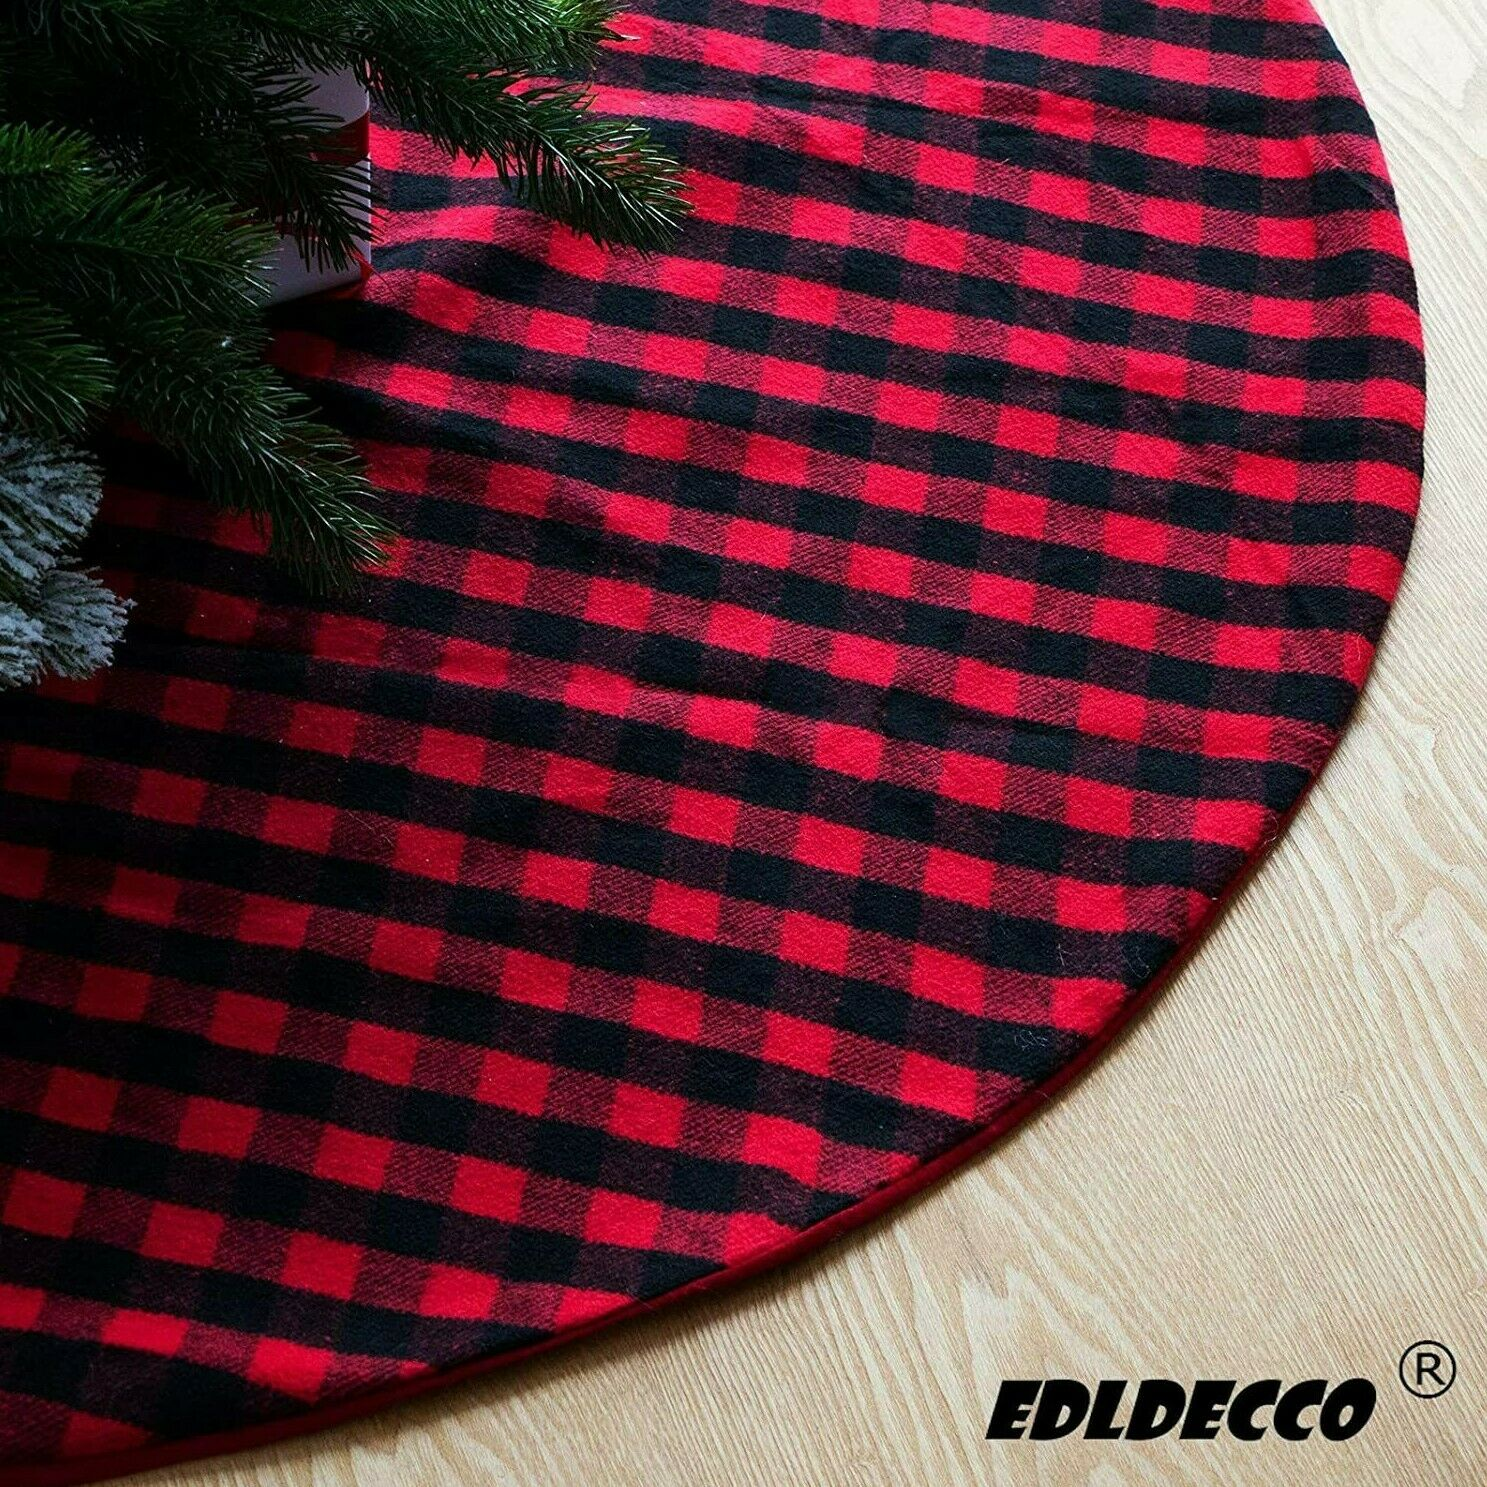 Seasonal Decor Red And Black S Deal Buffalo Plaid Christmas Tree Collar Top 23inch Bottom 30inch Christmas Tree Skirt Tree Ring Self Assemble Tree Ring For Xmas Holiday Decorations Home Kitchen Fenz Si